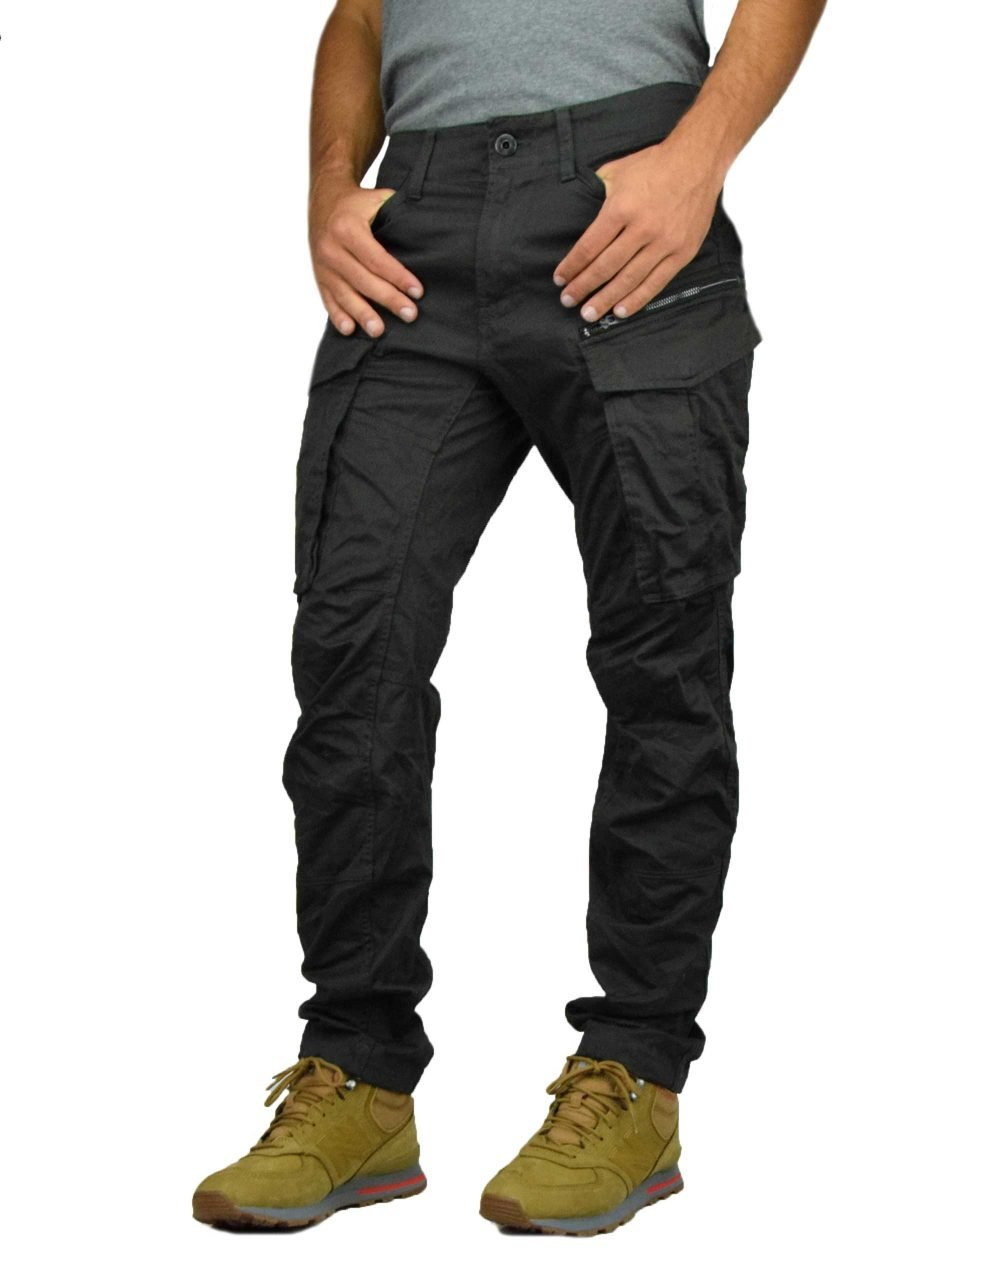 G-Star Raw Rovic Zip 3D Straight Tapered (D02190-5126-976) Raven